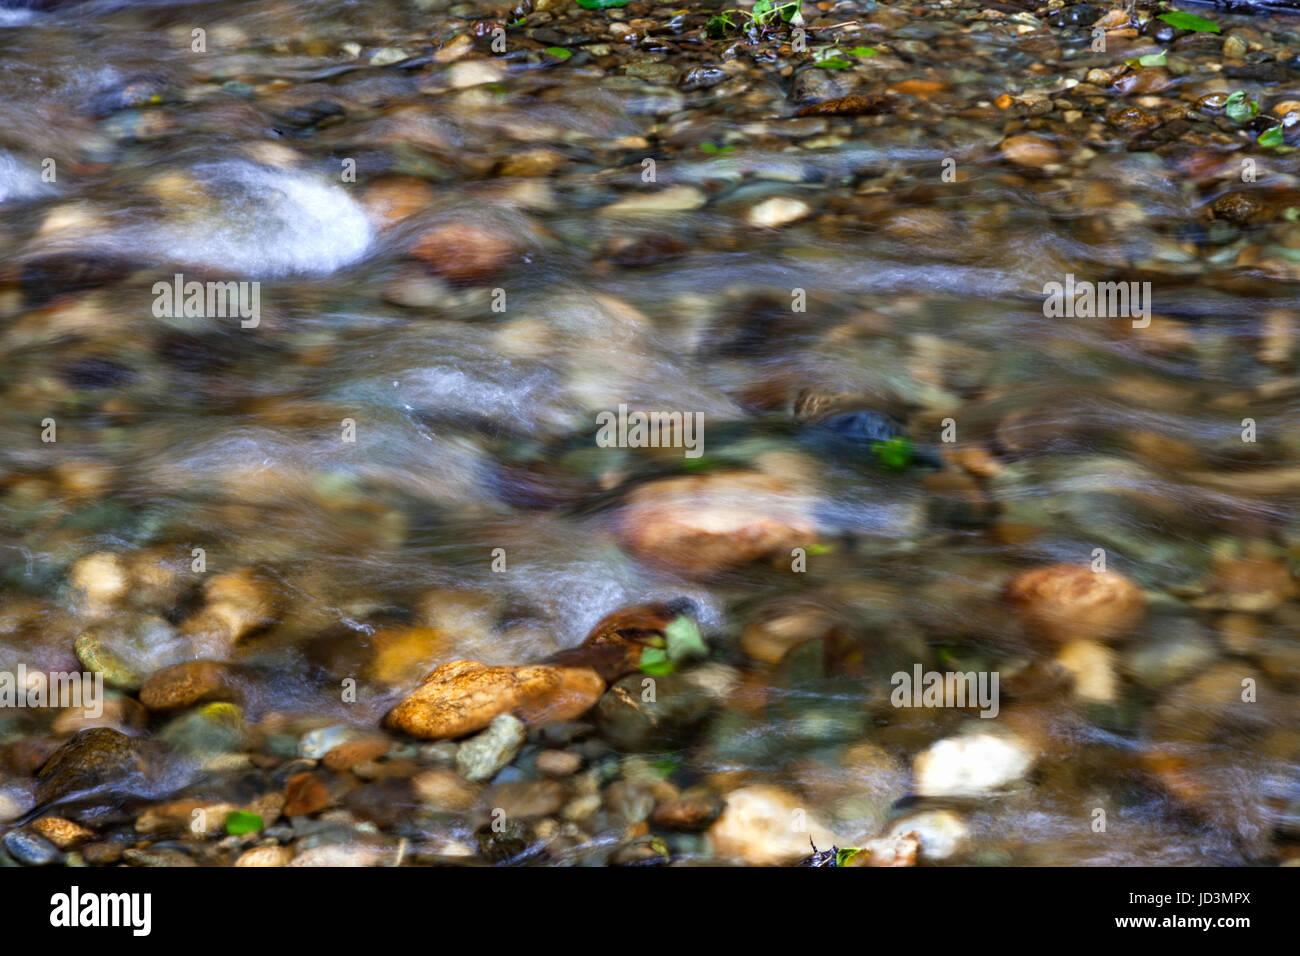 Water flows over the rocks and pebbles of Home Creek as it flows through Fern Canyon in Northern California's - Stock Image